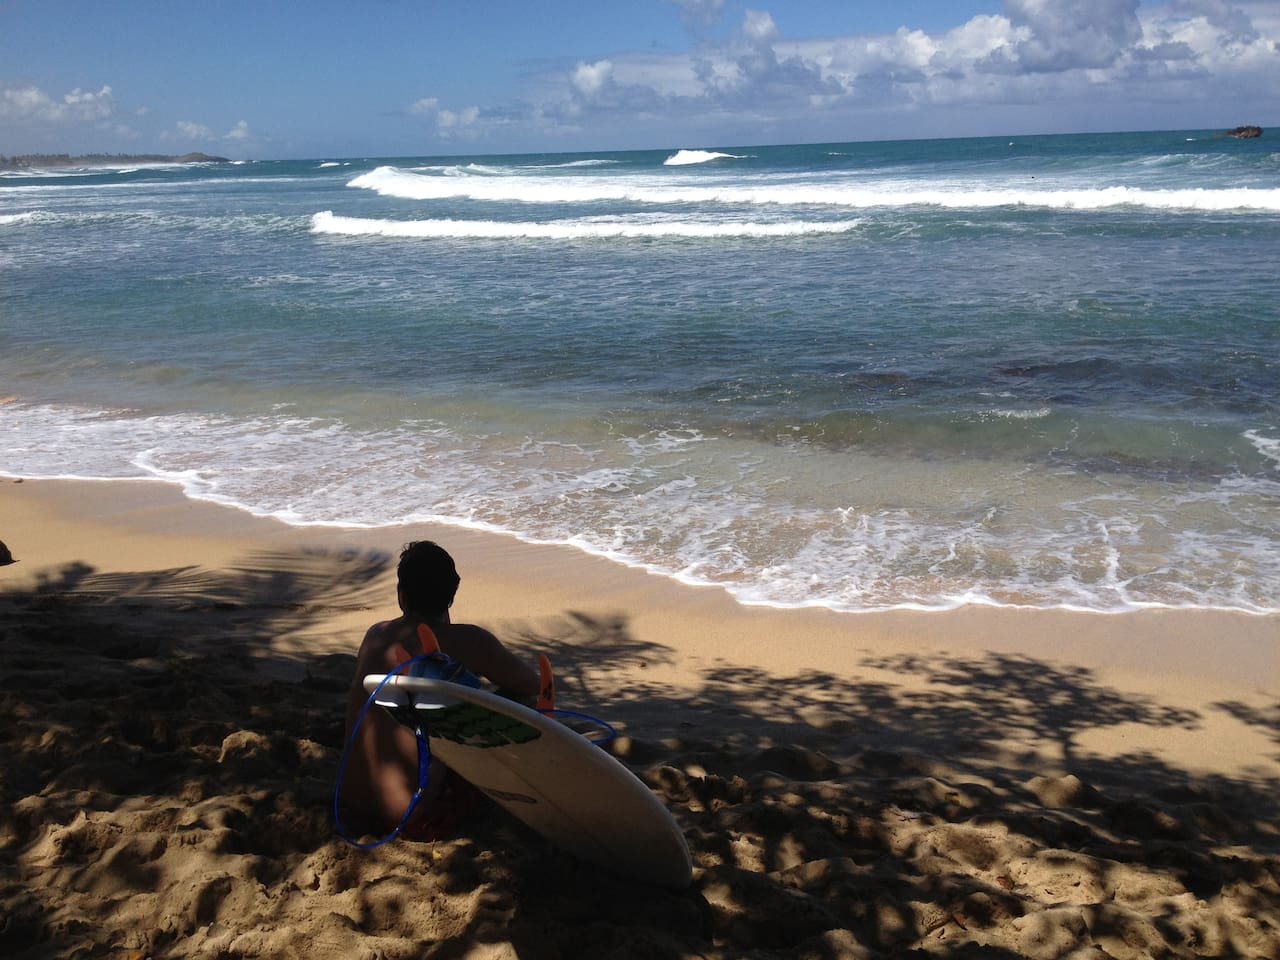 Great surfing and snorkling spot